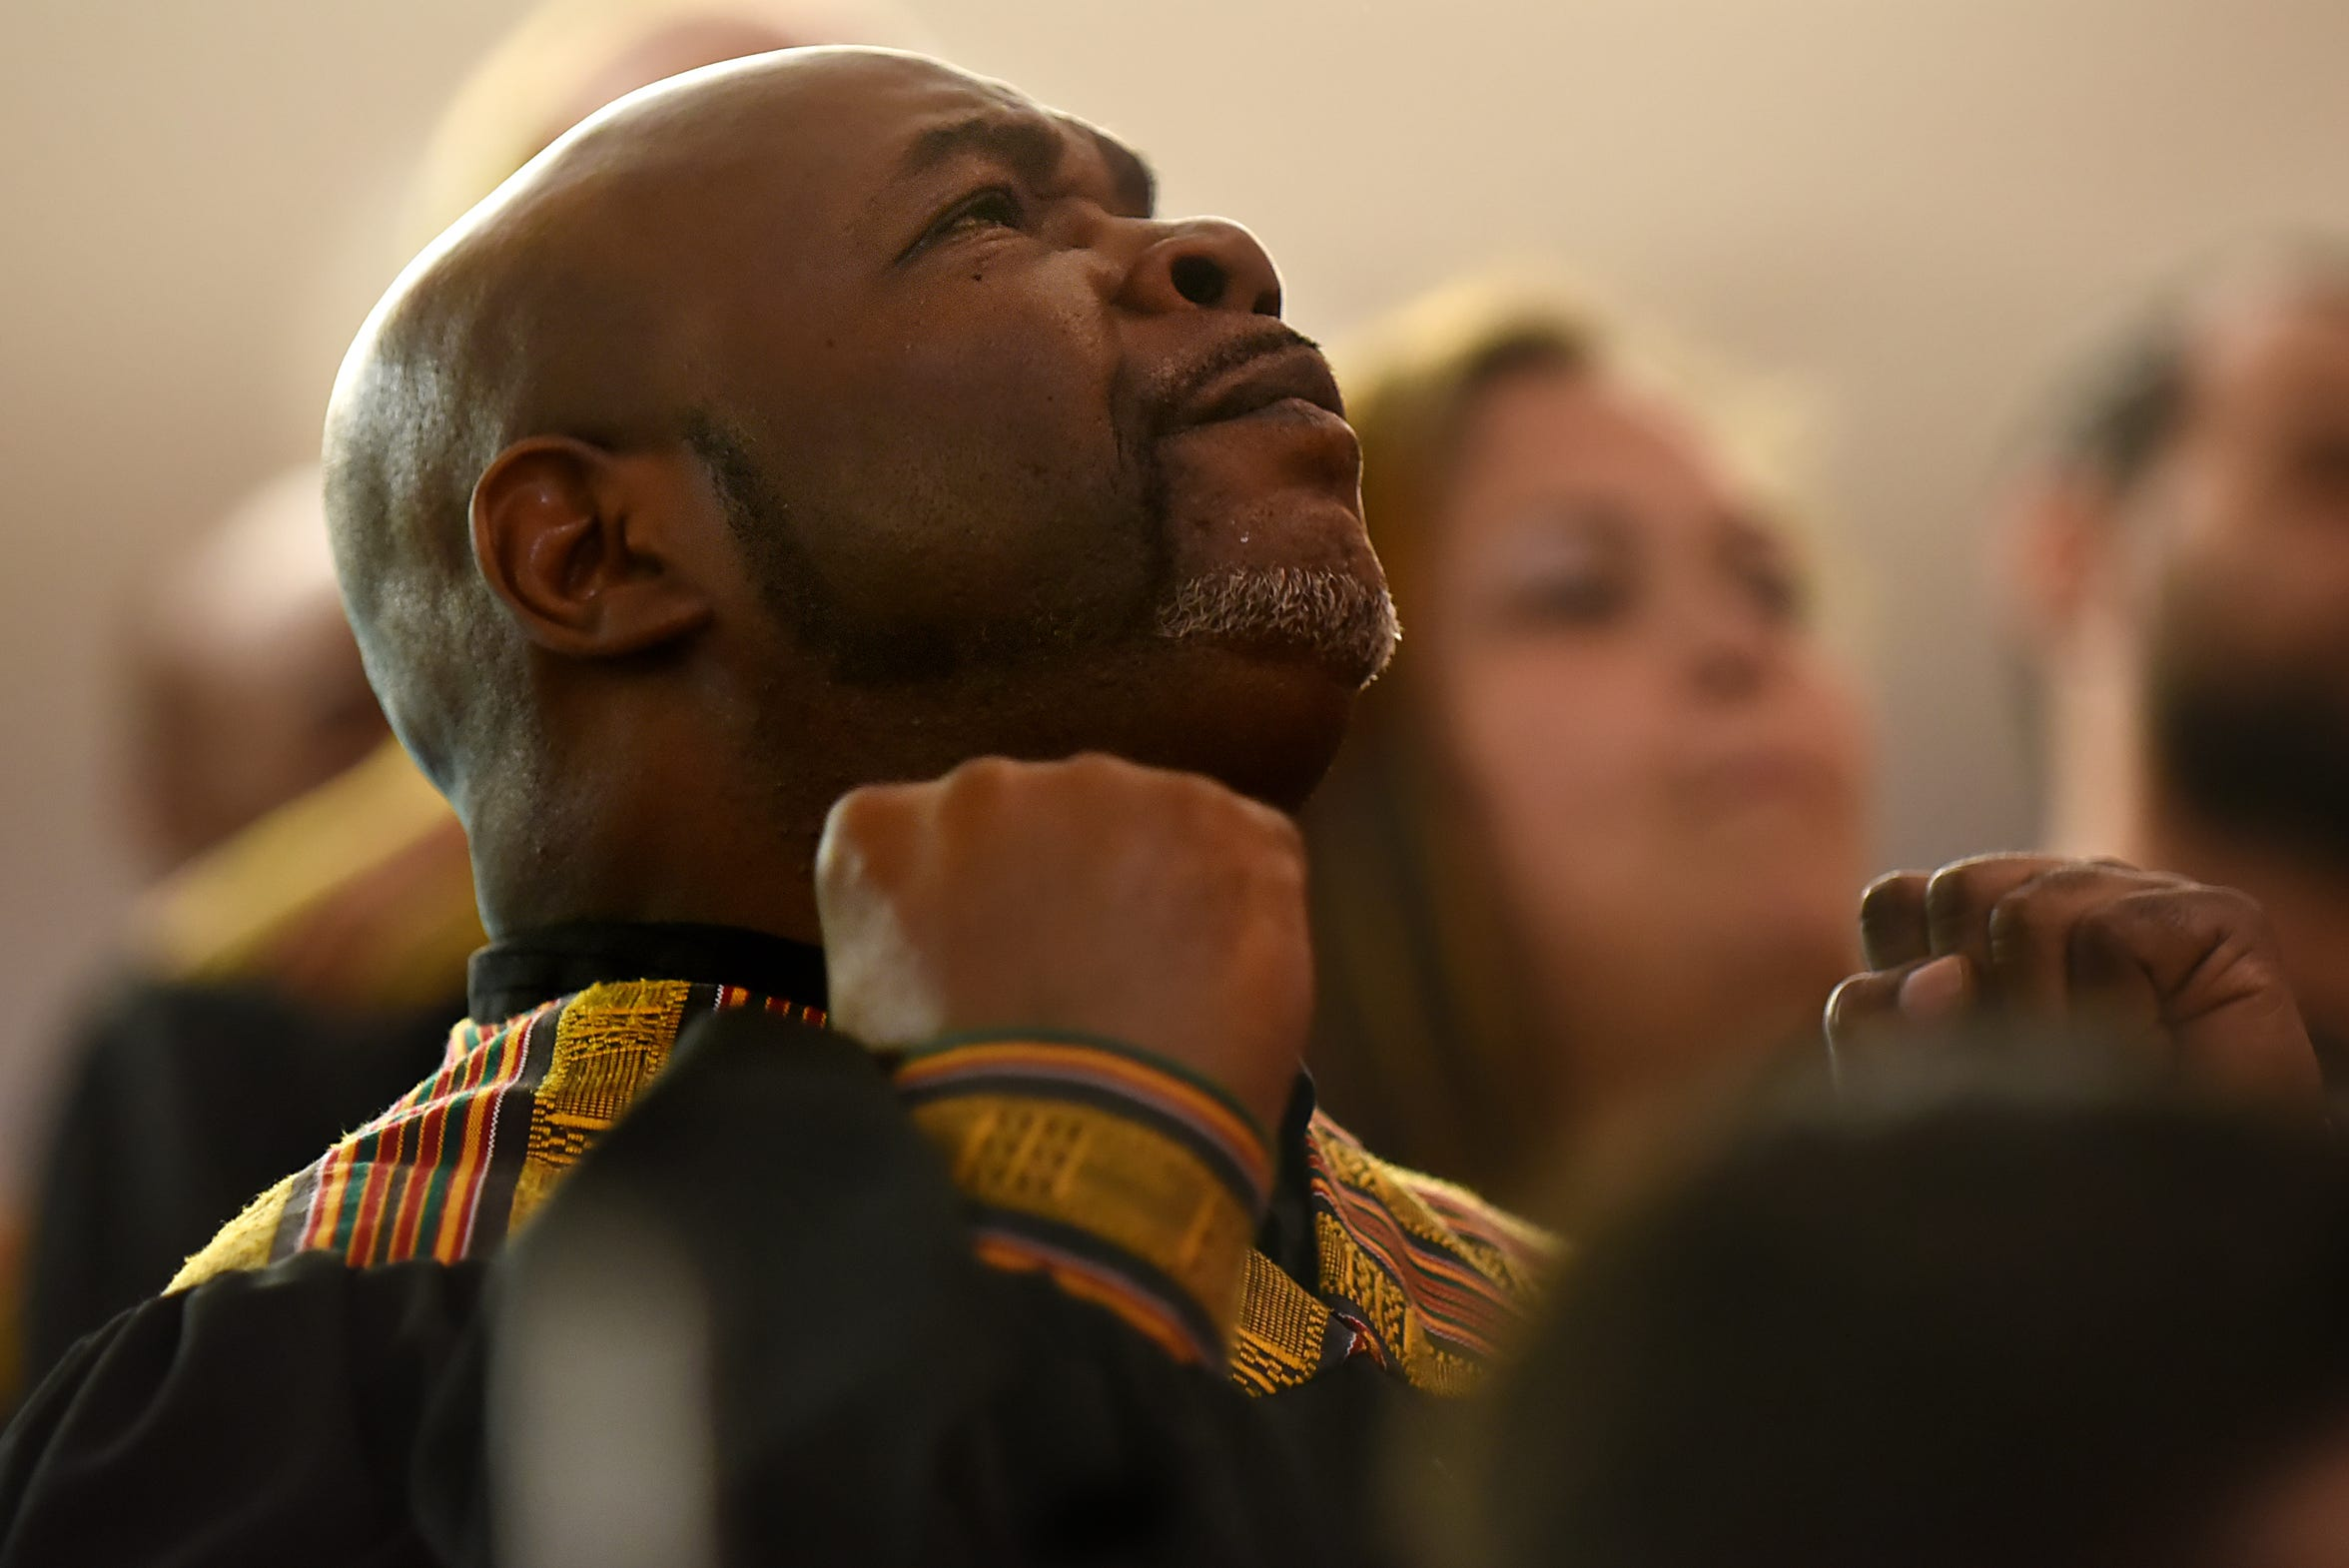 Irv DeBois, 57, a soloist with the Straight & Narrow Gospel Choir for recovering addicts, has been free of his addiction to heroin for more than a decade. He recruited alumni of Straight & Narrow's detox programs to join the choir, lending some continuity to its revolving membership.